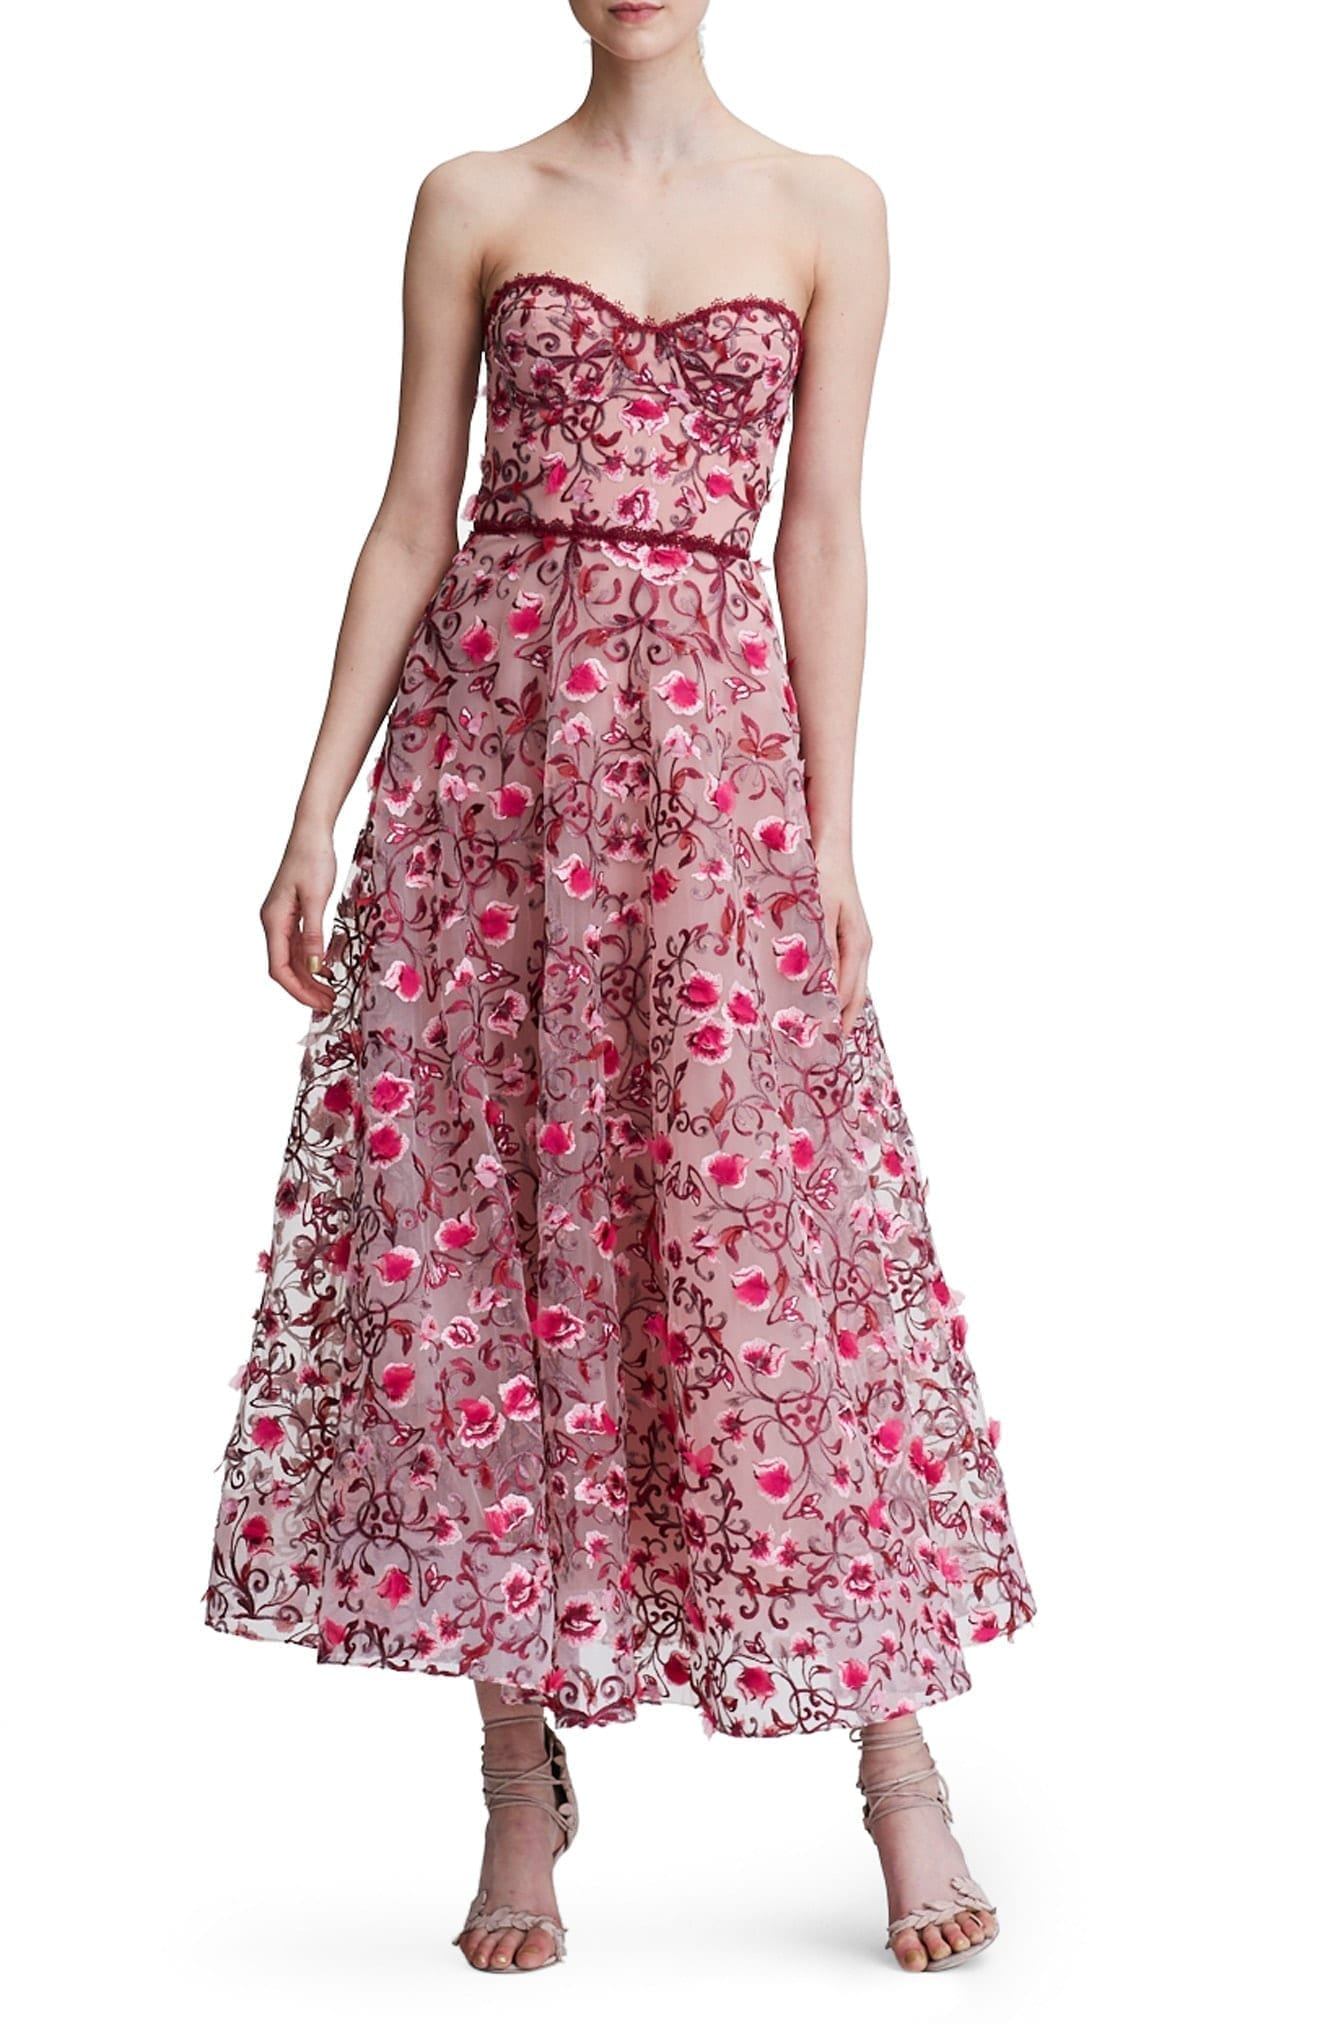 b0f31faac3a MARCHESA NOTTE Floral Embroidered Strapless Tea Length Blush Gown ...